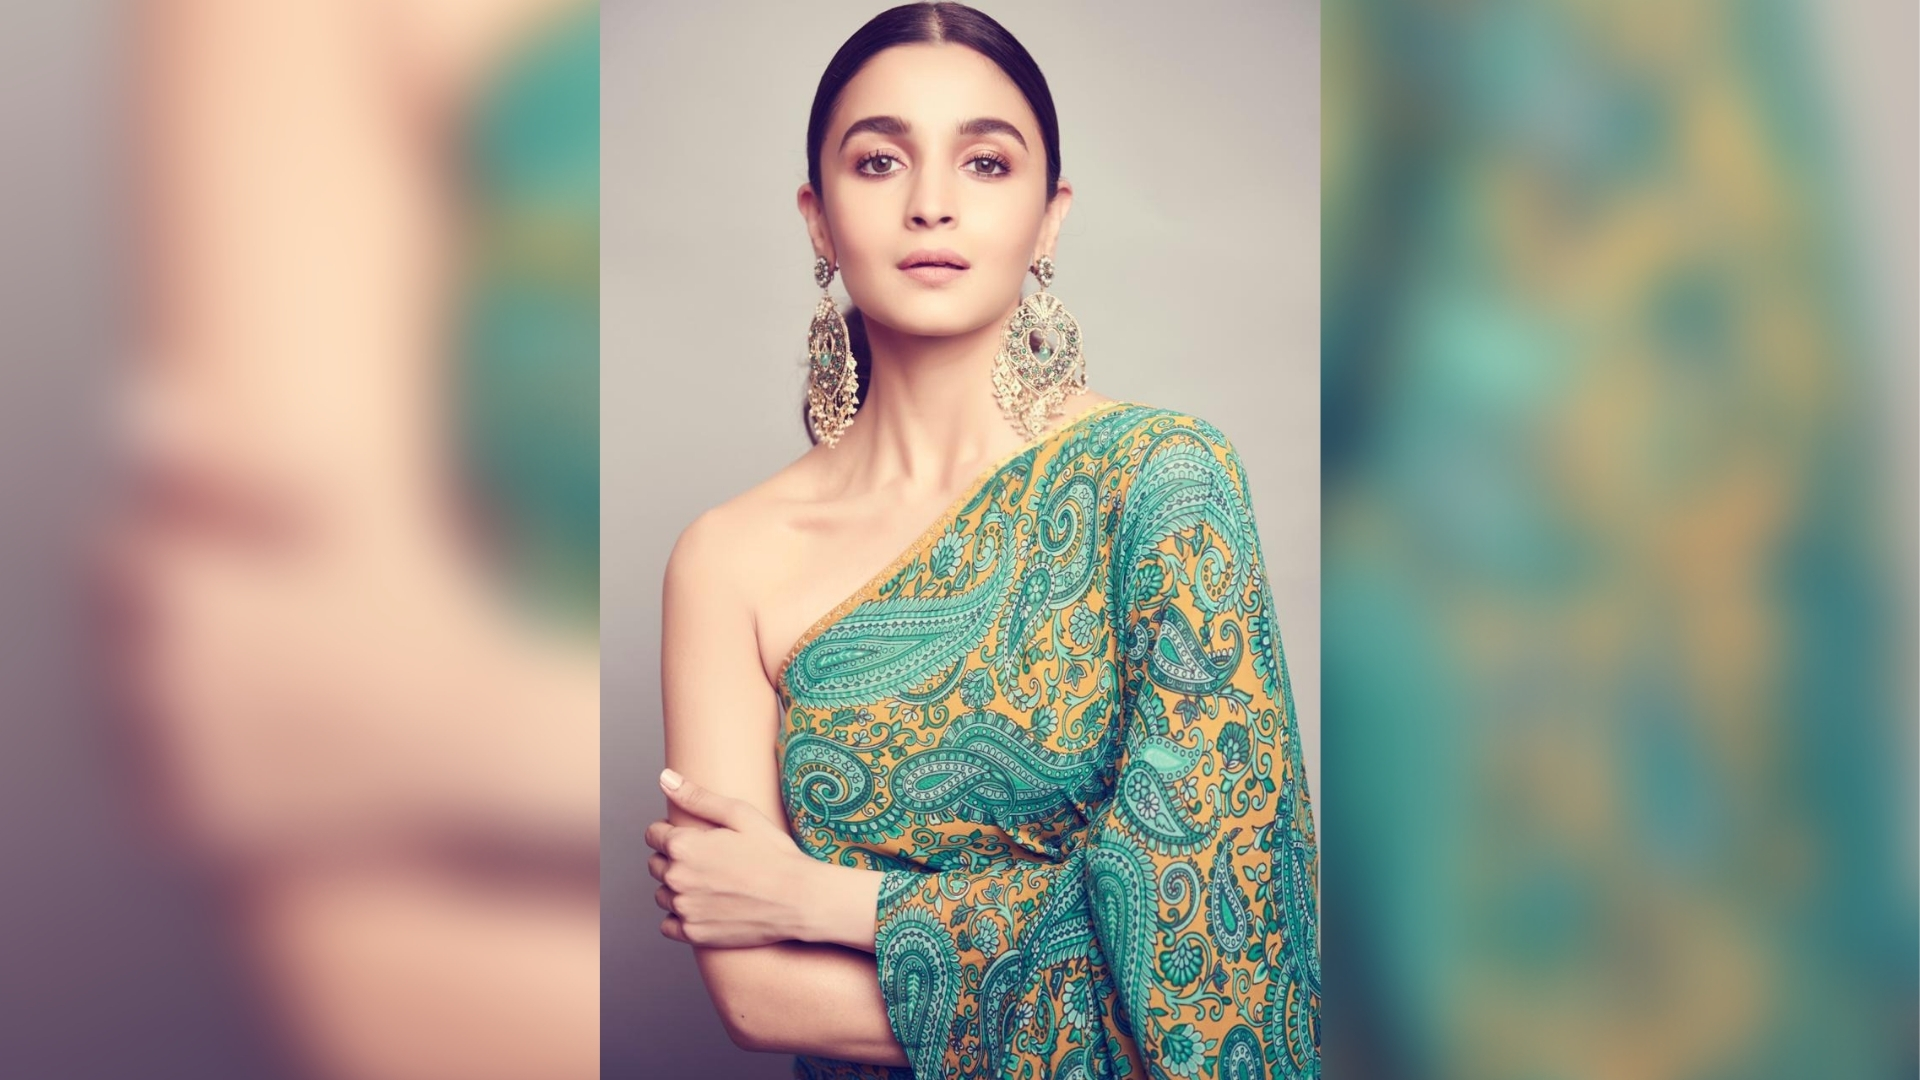 Alia Bhatt Nominated for Most Inspiring Asian Woman of 2019